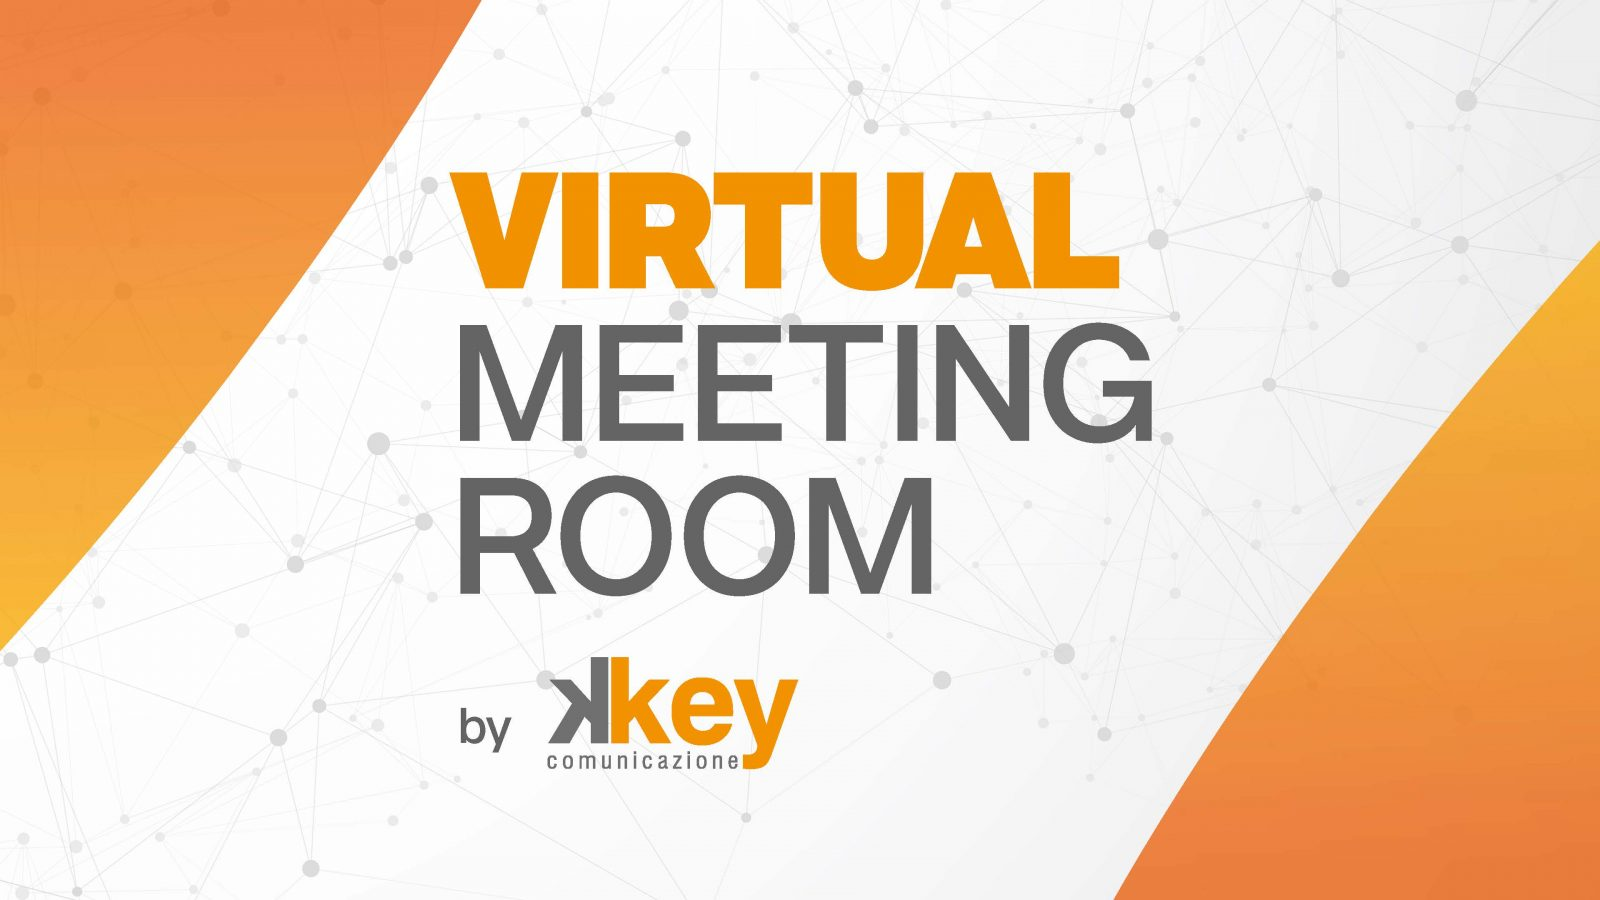 Virtual Meeting Room